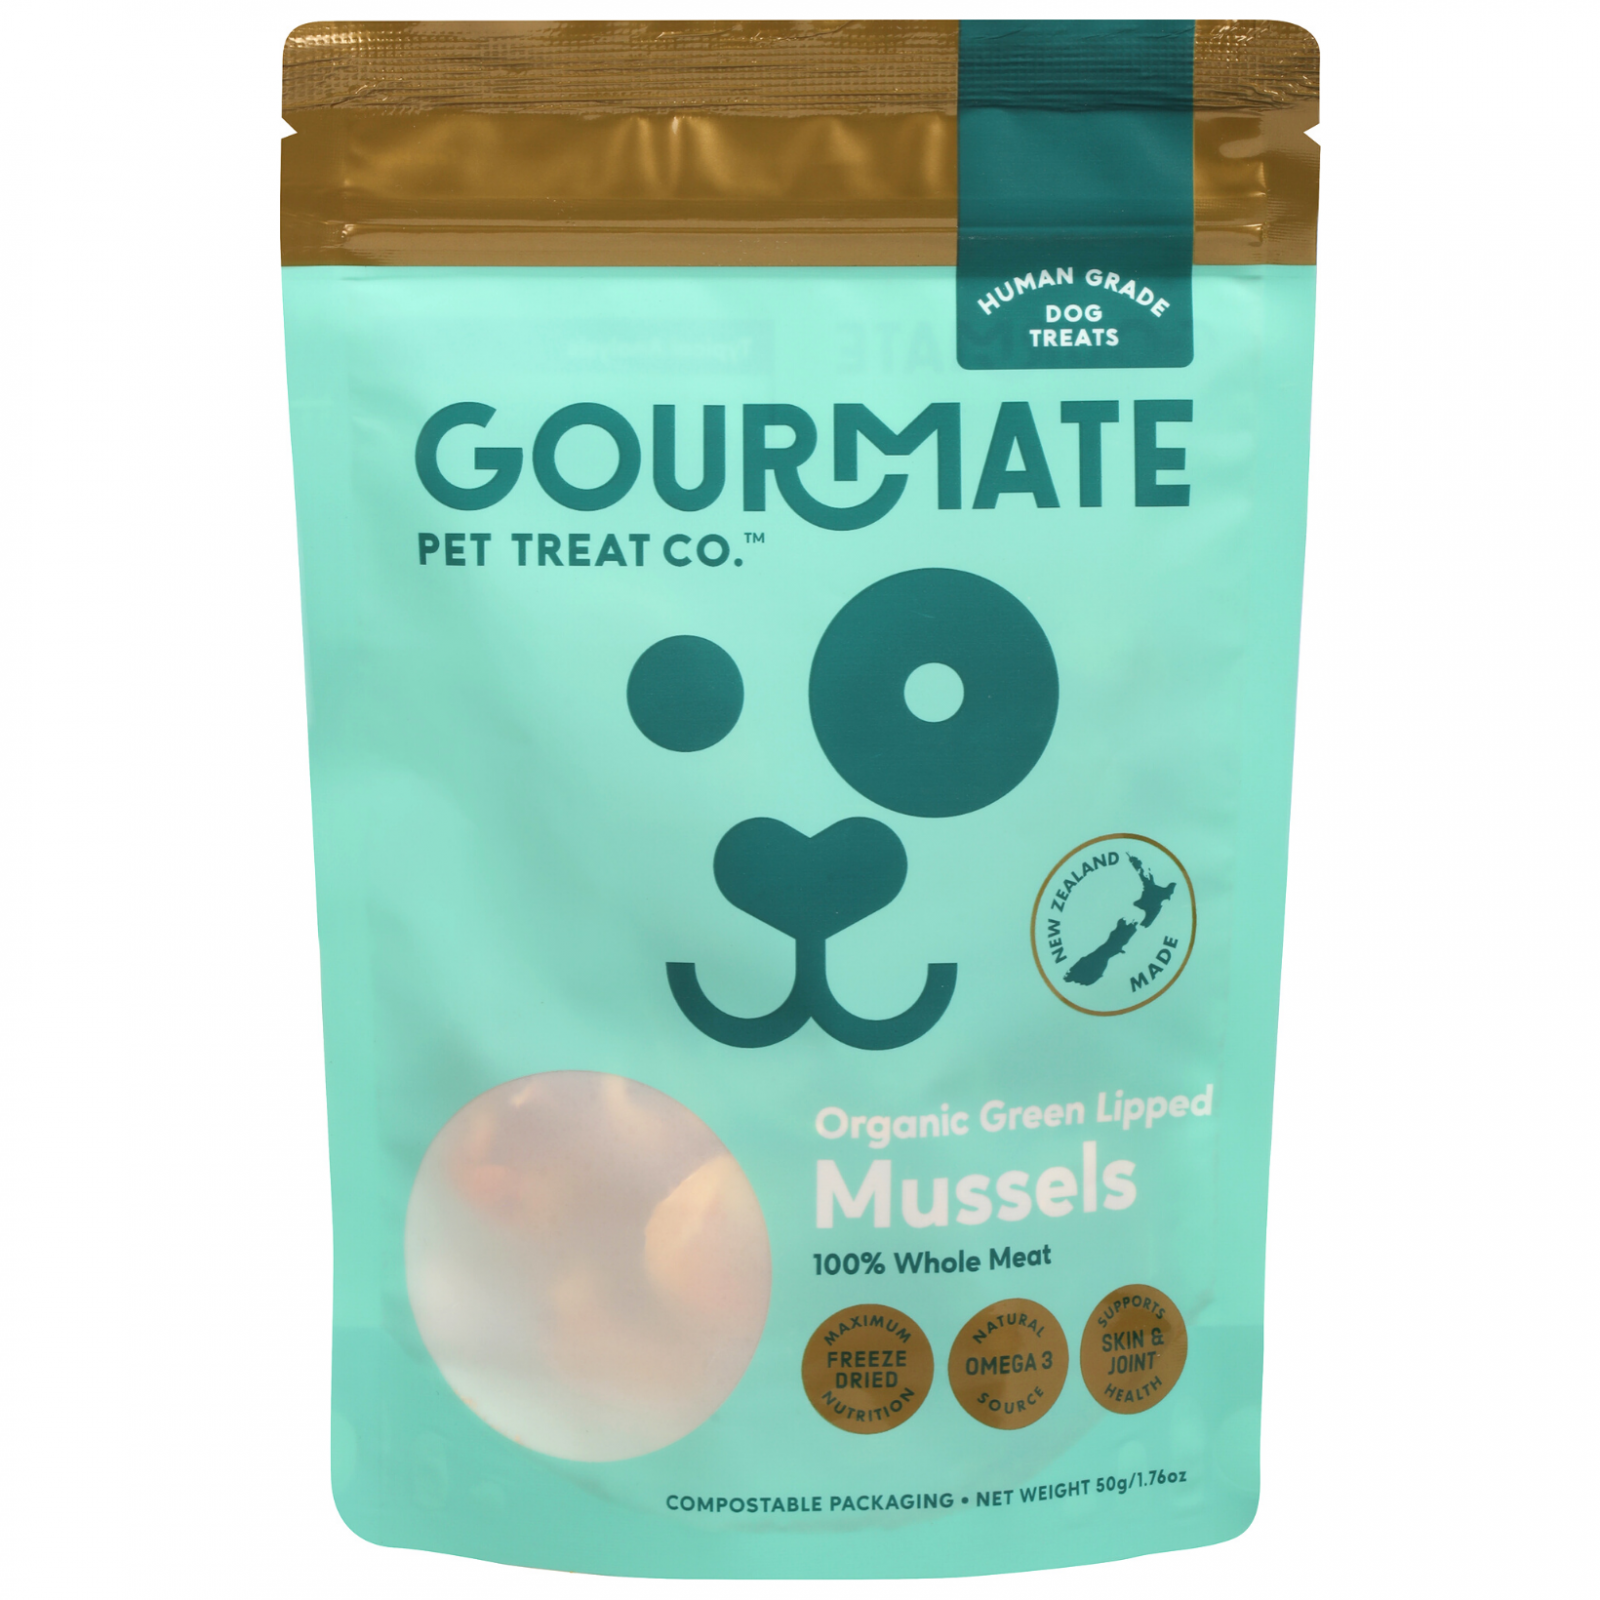 Gourmate Gourmate Pet Treat Co. Green Lipped Mussels Dog Treats